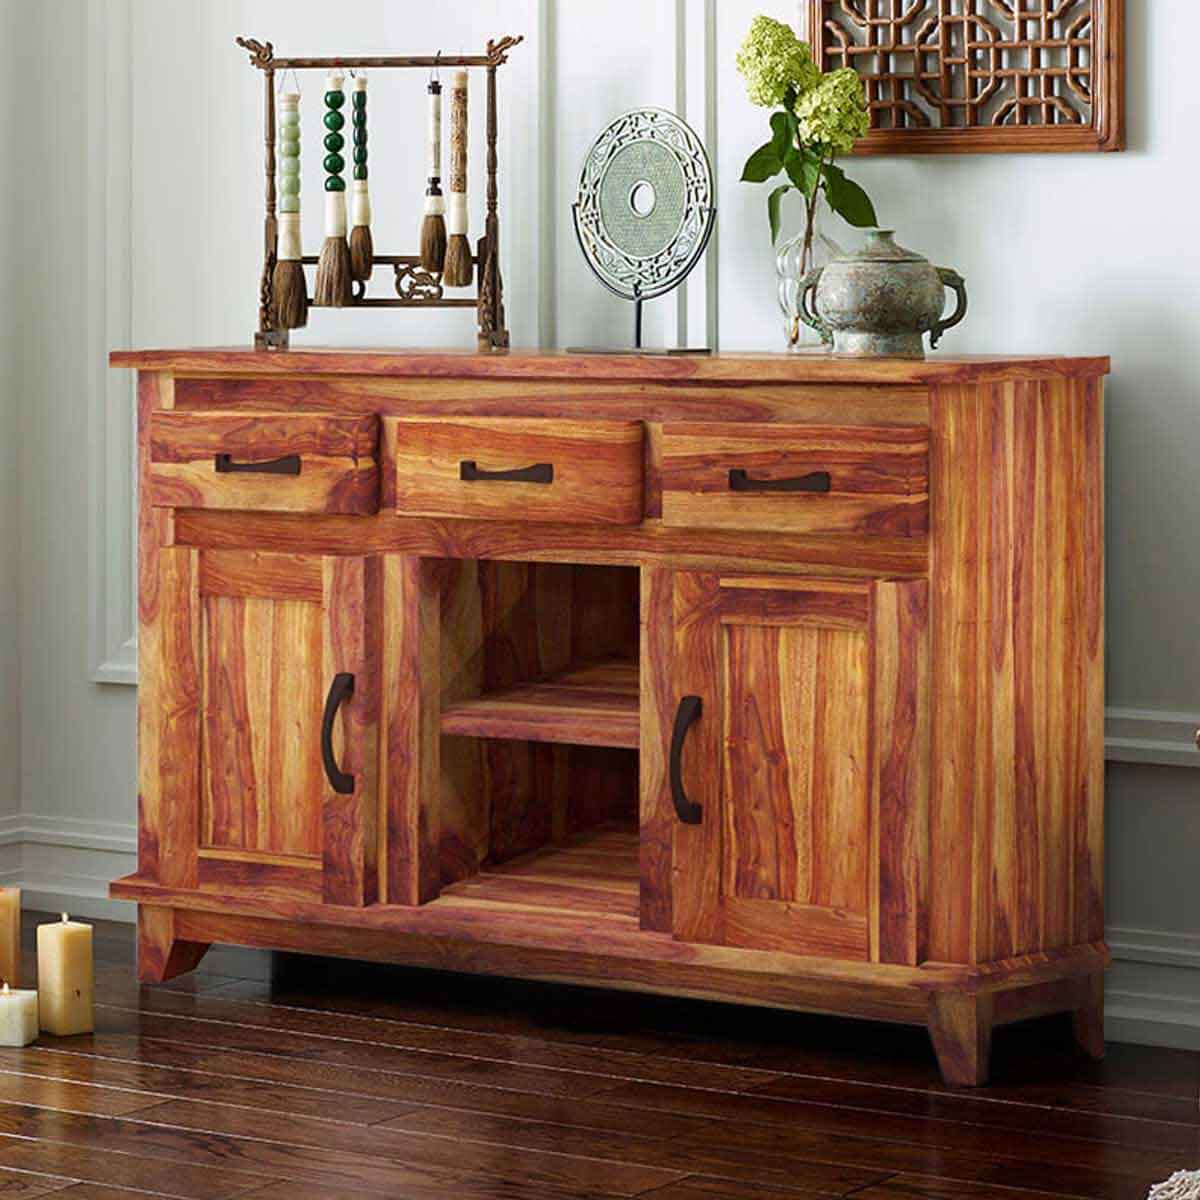 sierra nevada modern rustic solid wood 3 drawer sideboard. Black Bedroom Furniture Sets. Home Design Ideas